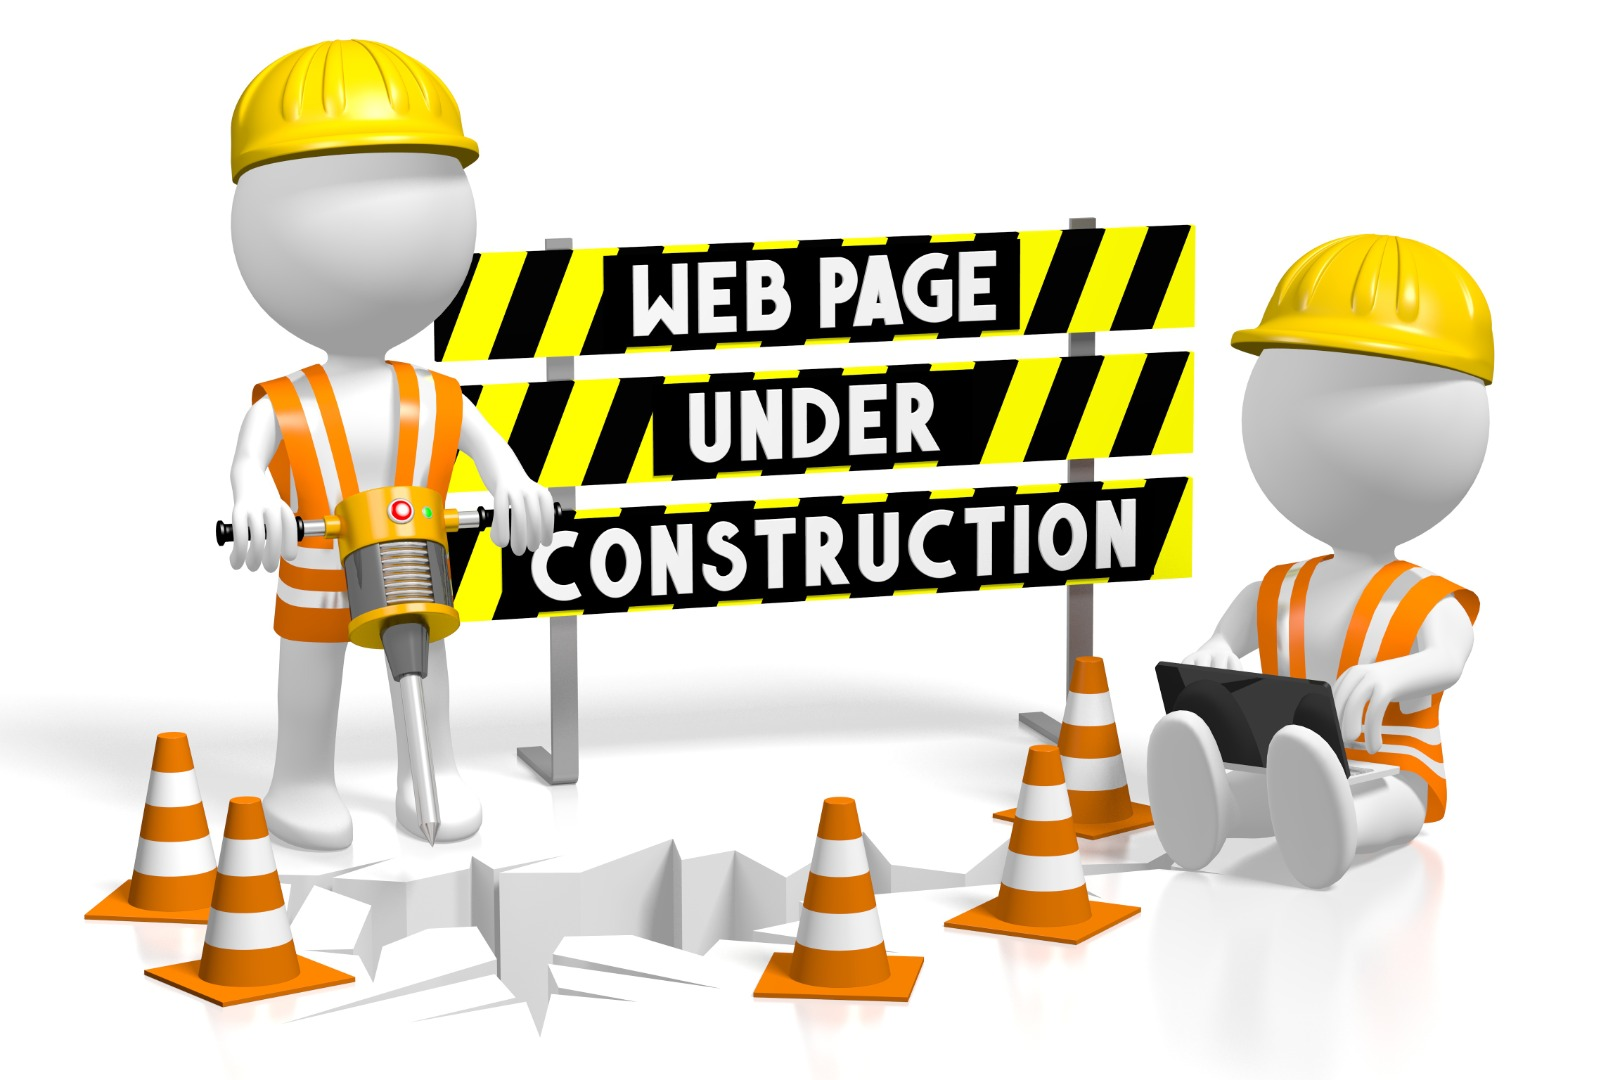 We Page under Construction